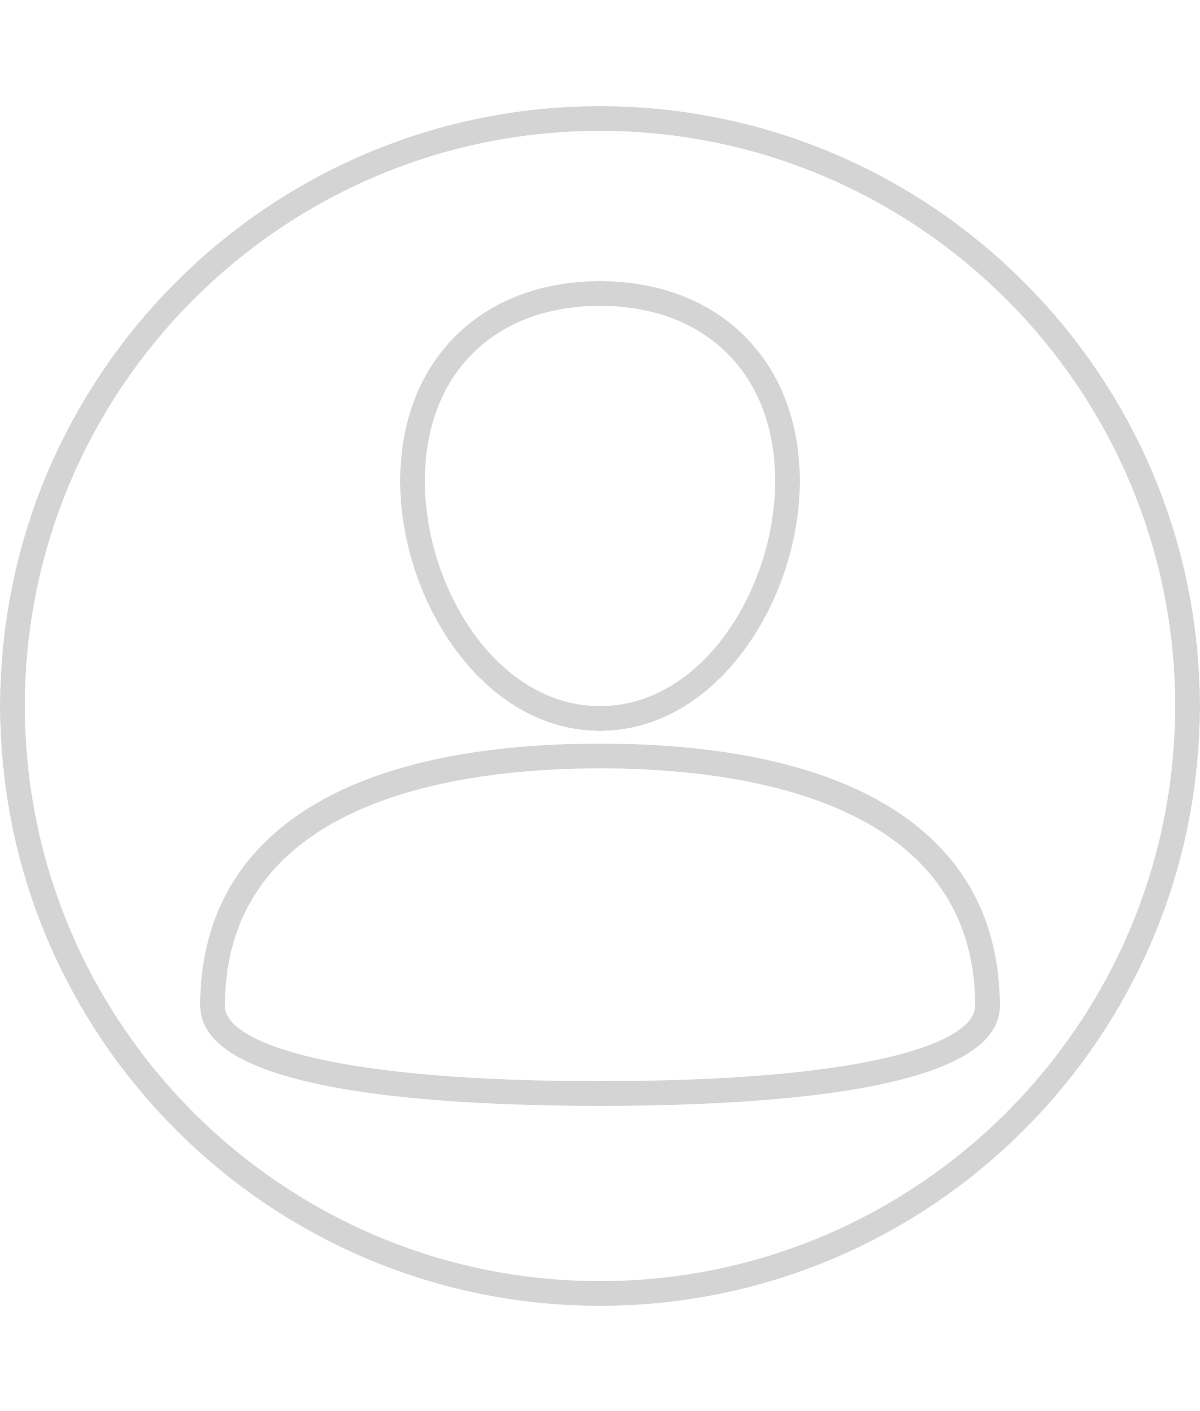 placeholder icon used in lieu of a photograph of Maya Montañez Smukler